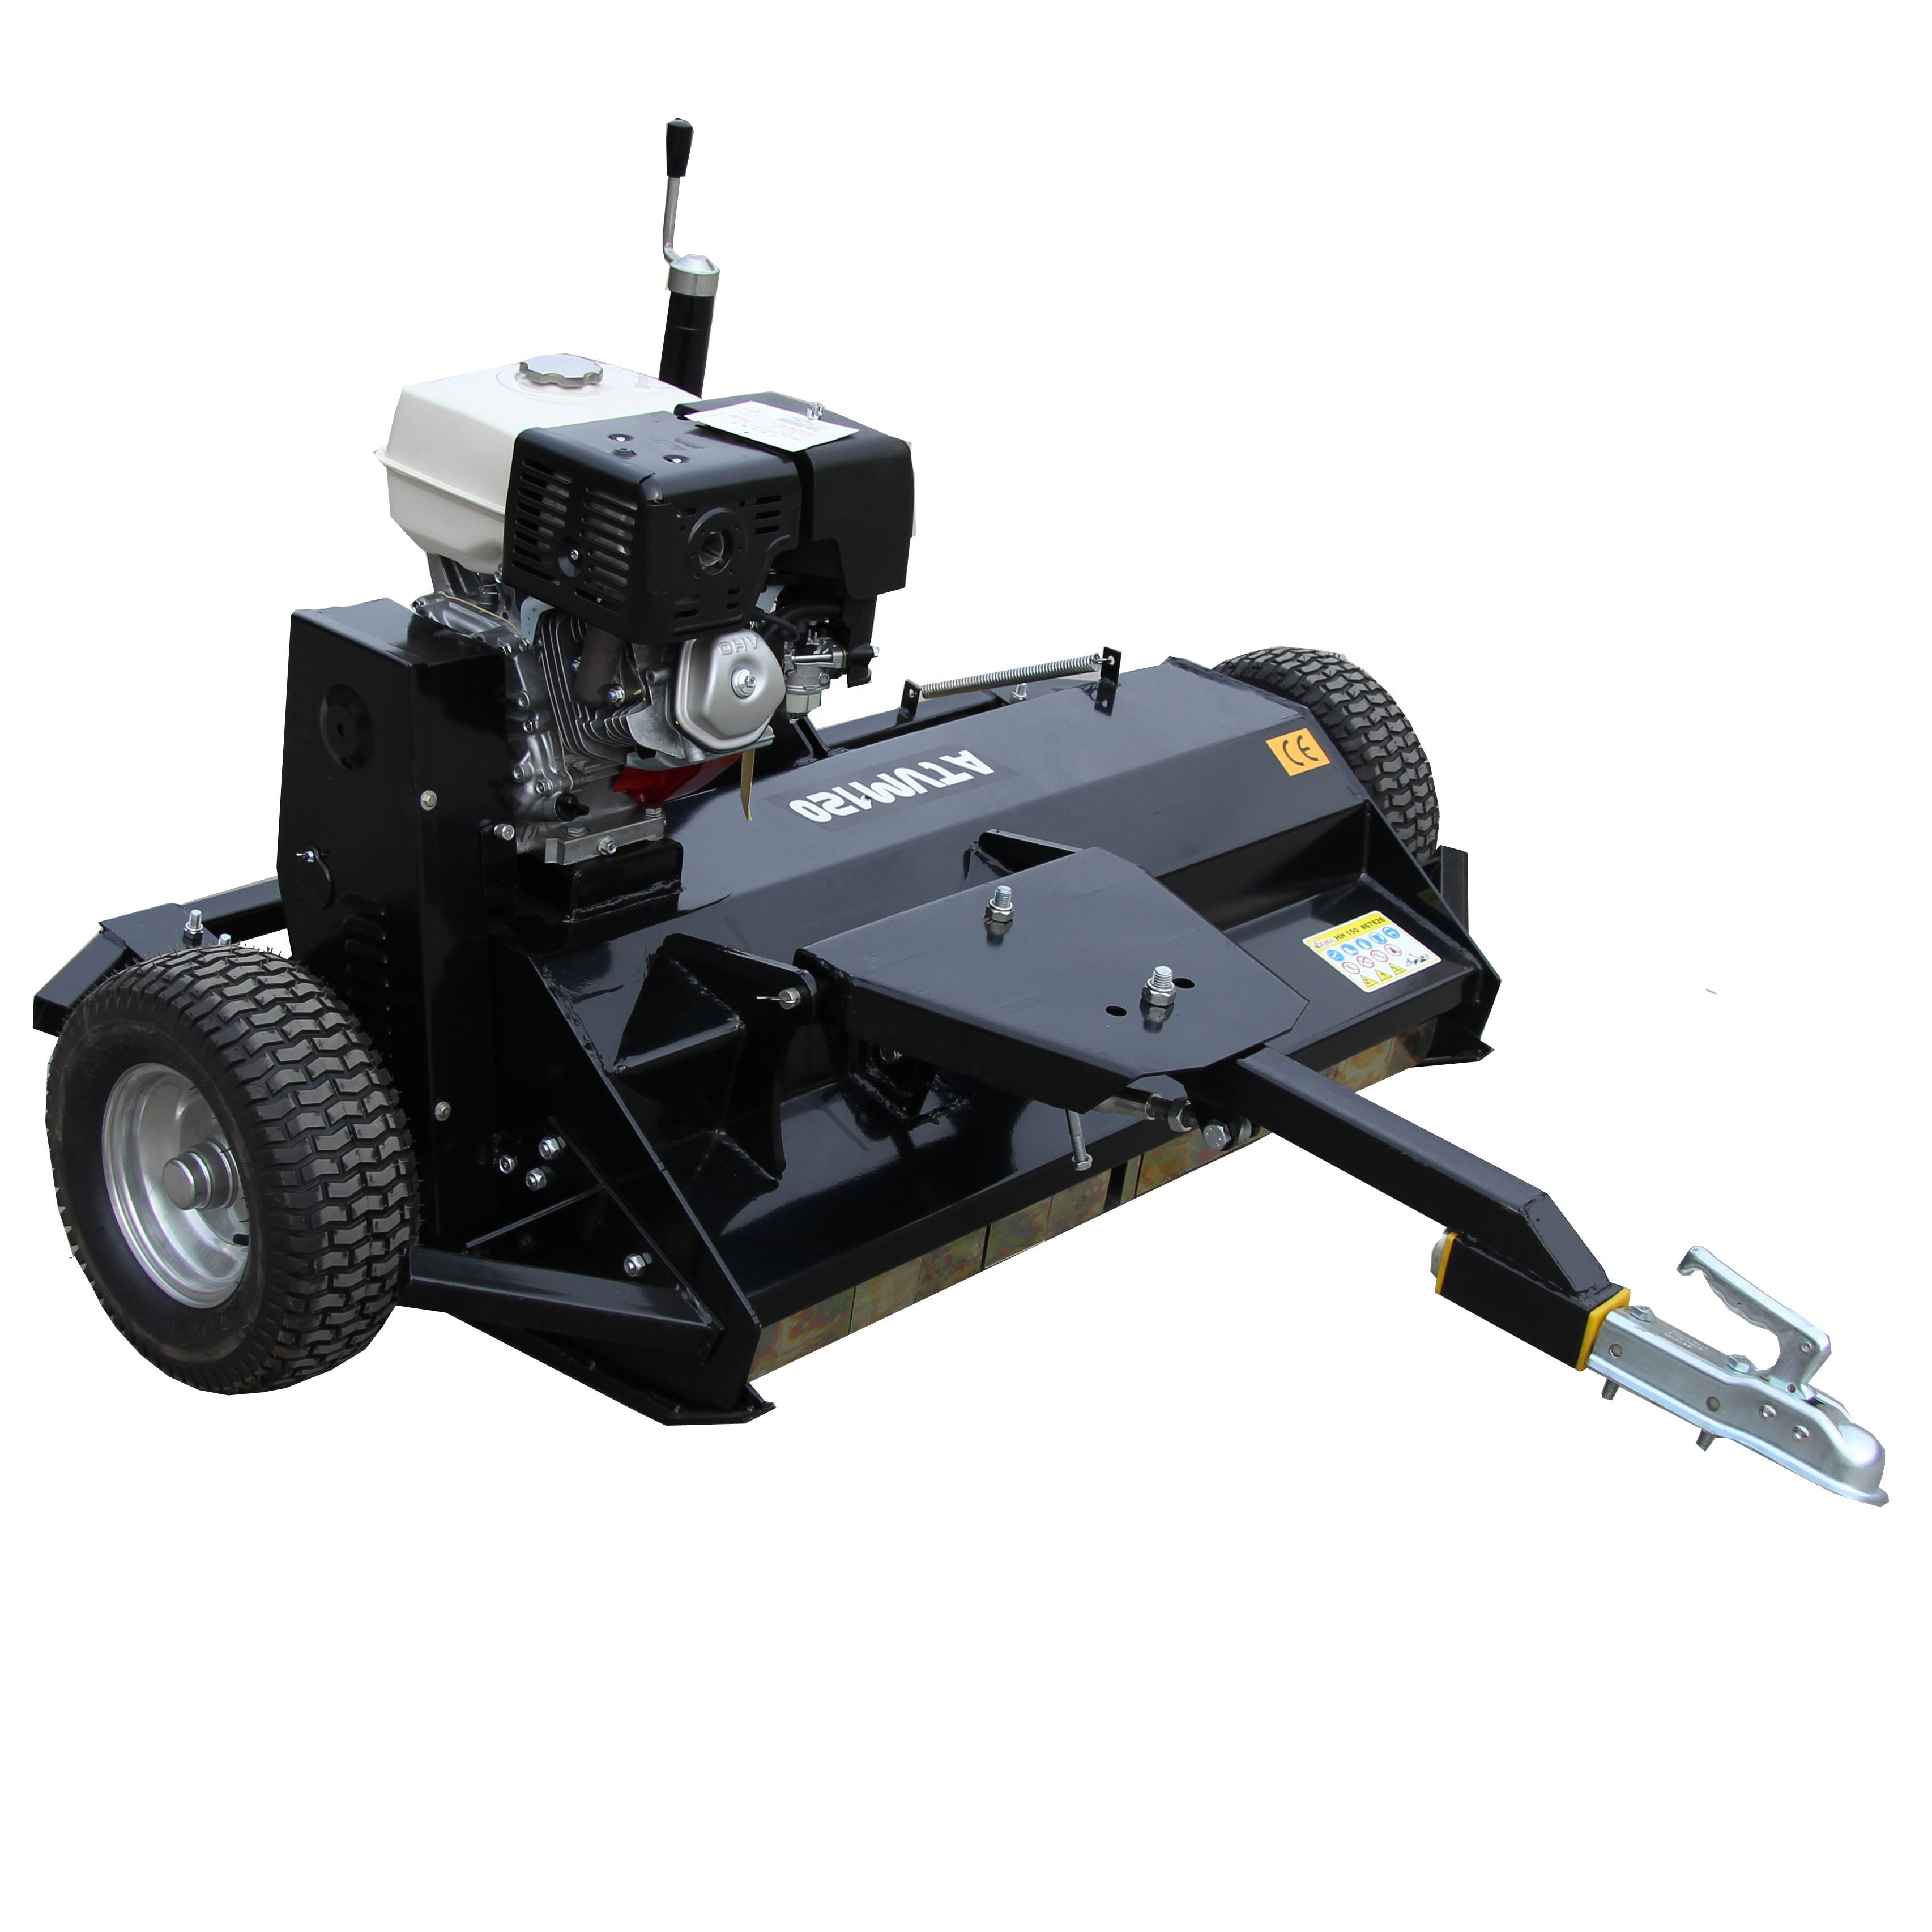 Factory Price Gasoline Power ATVM120 Flail Mower for ATV